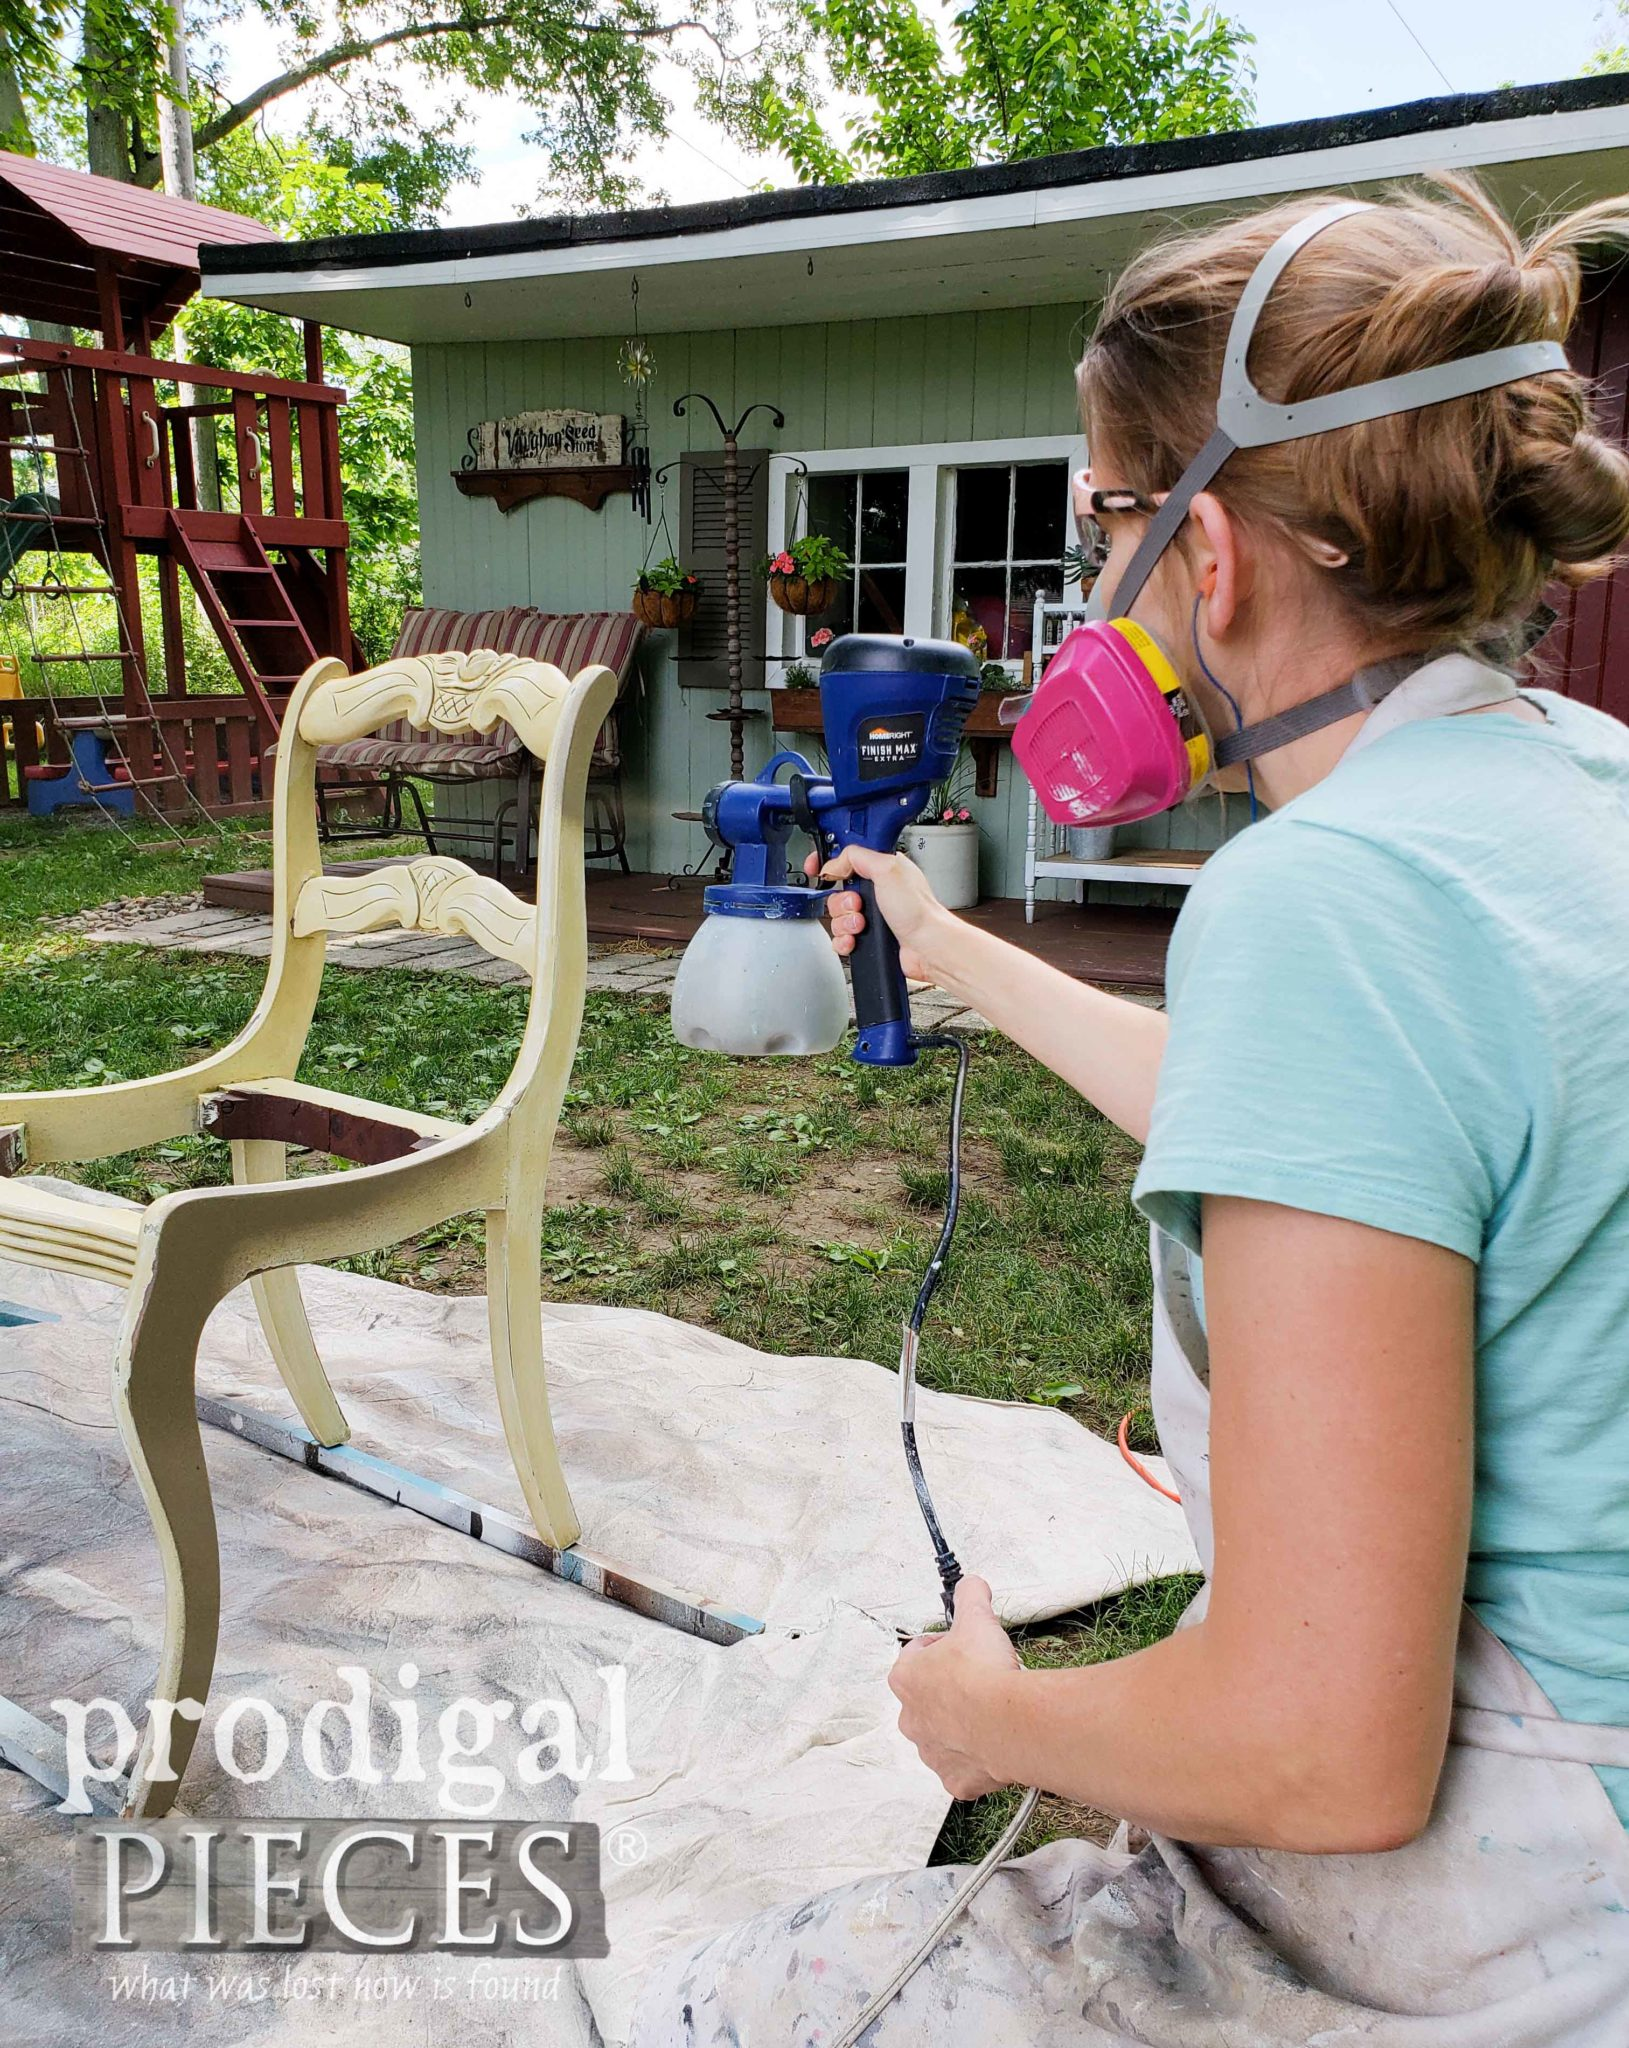 HomeRight Super Finish Max Extra to easily paint dining chairs by Larissa of Prodigal Pieces | prodigalpieces.com